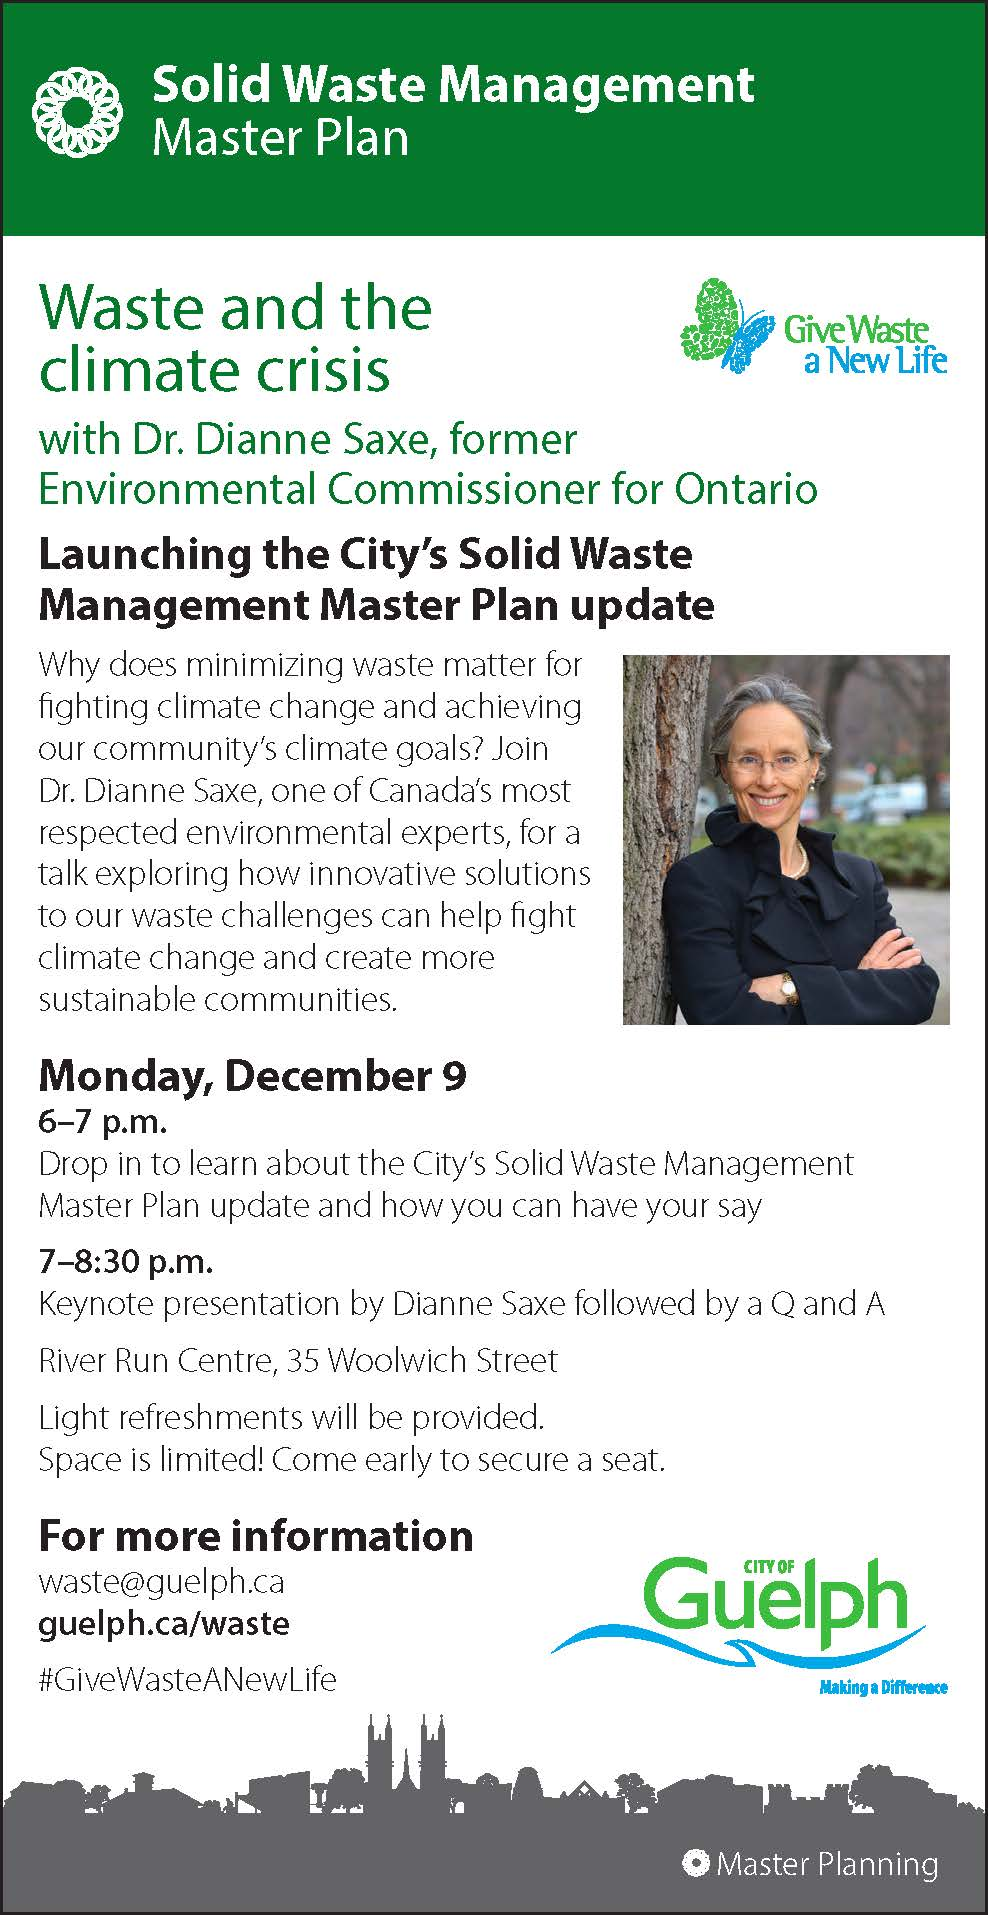 Guelph waste Master Plan launch